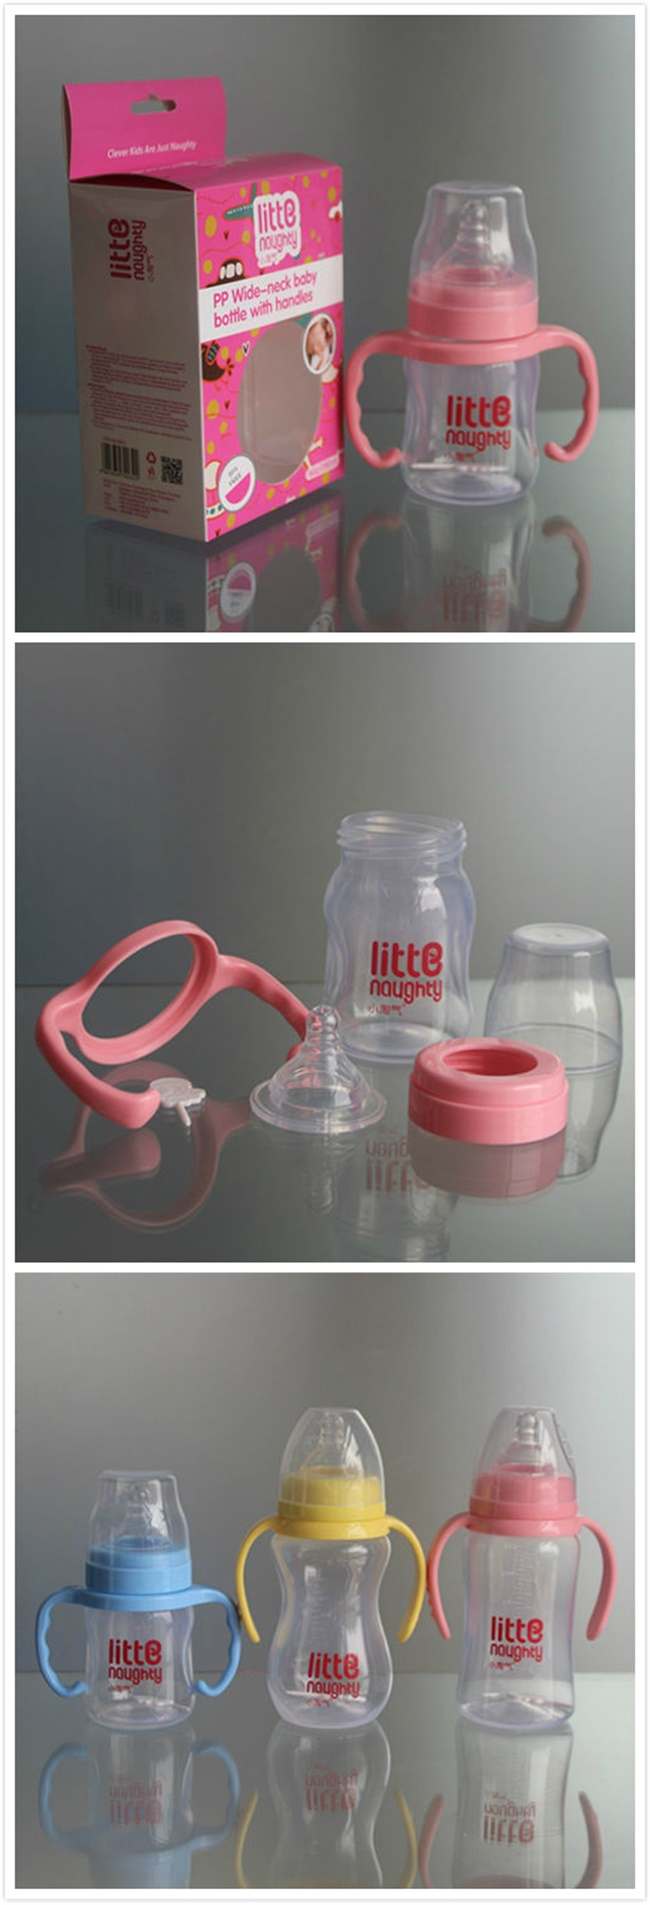 6oz 180ml Wide Neck PP Baby Feeding Bottle